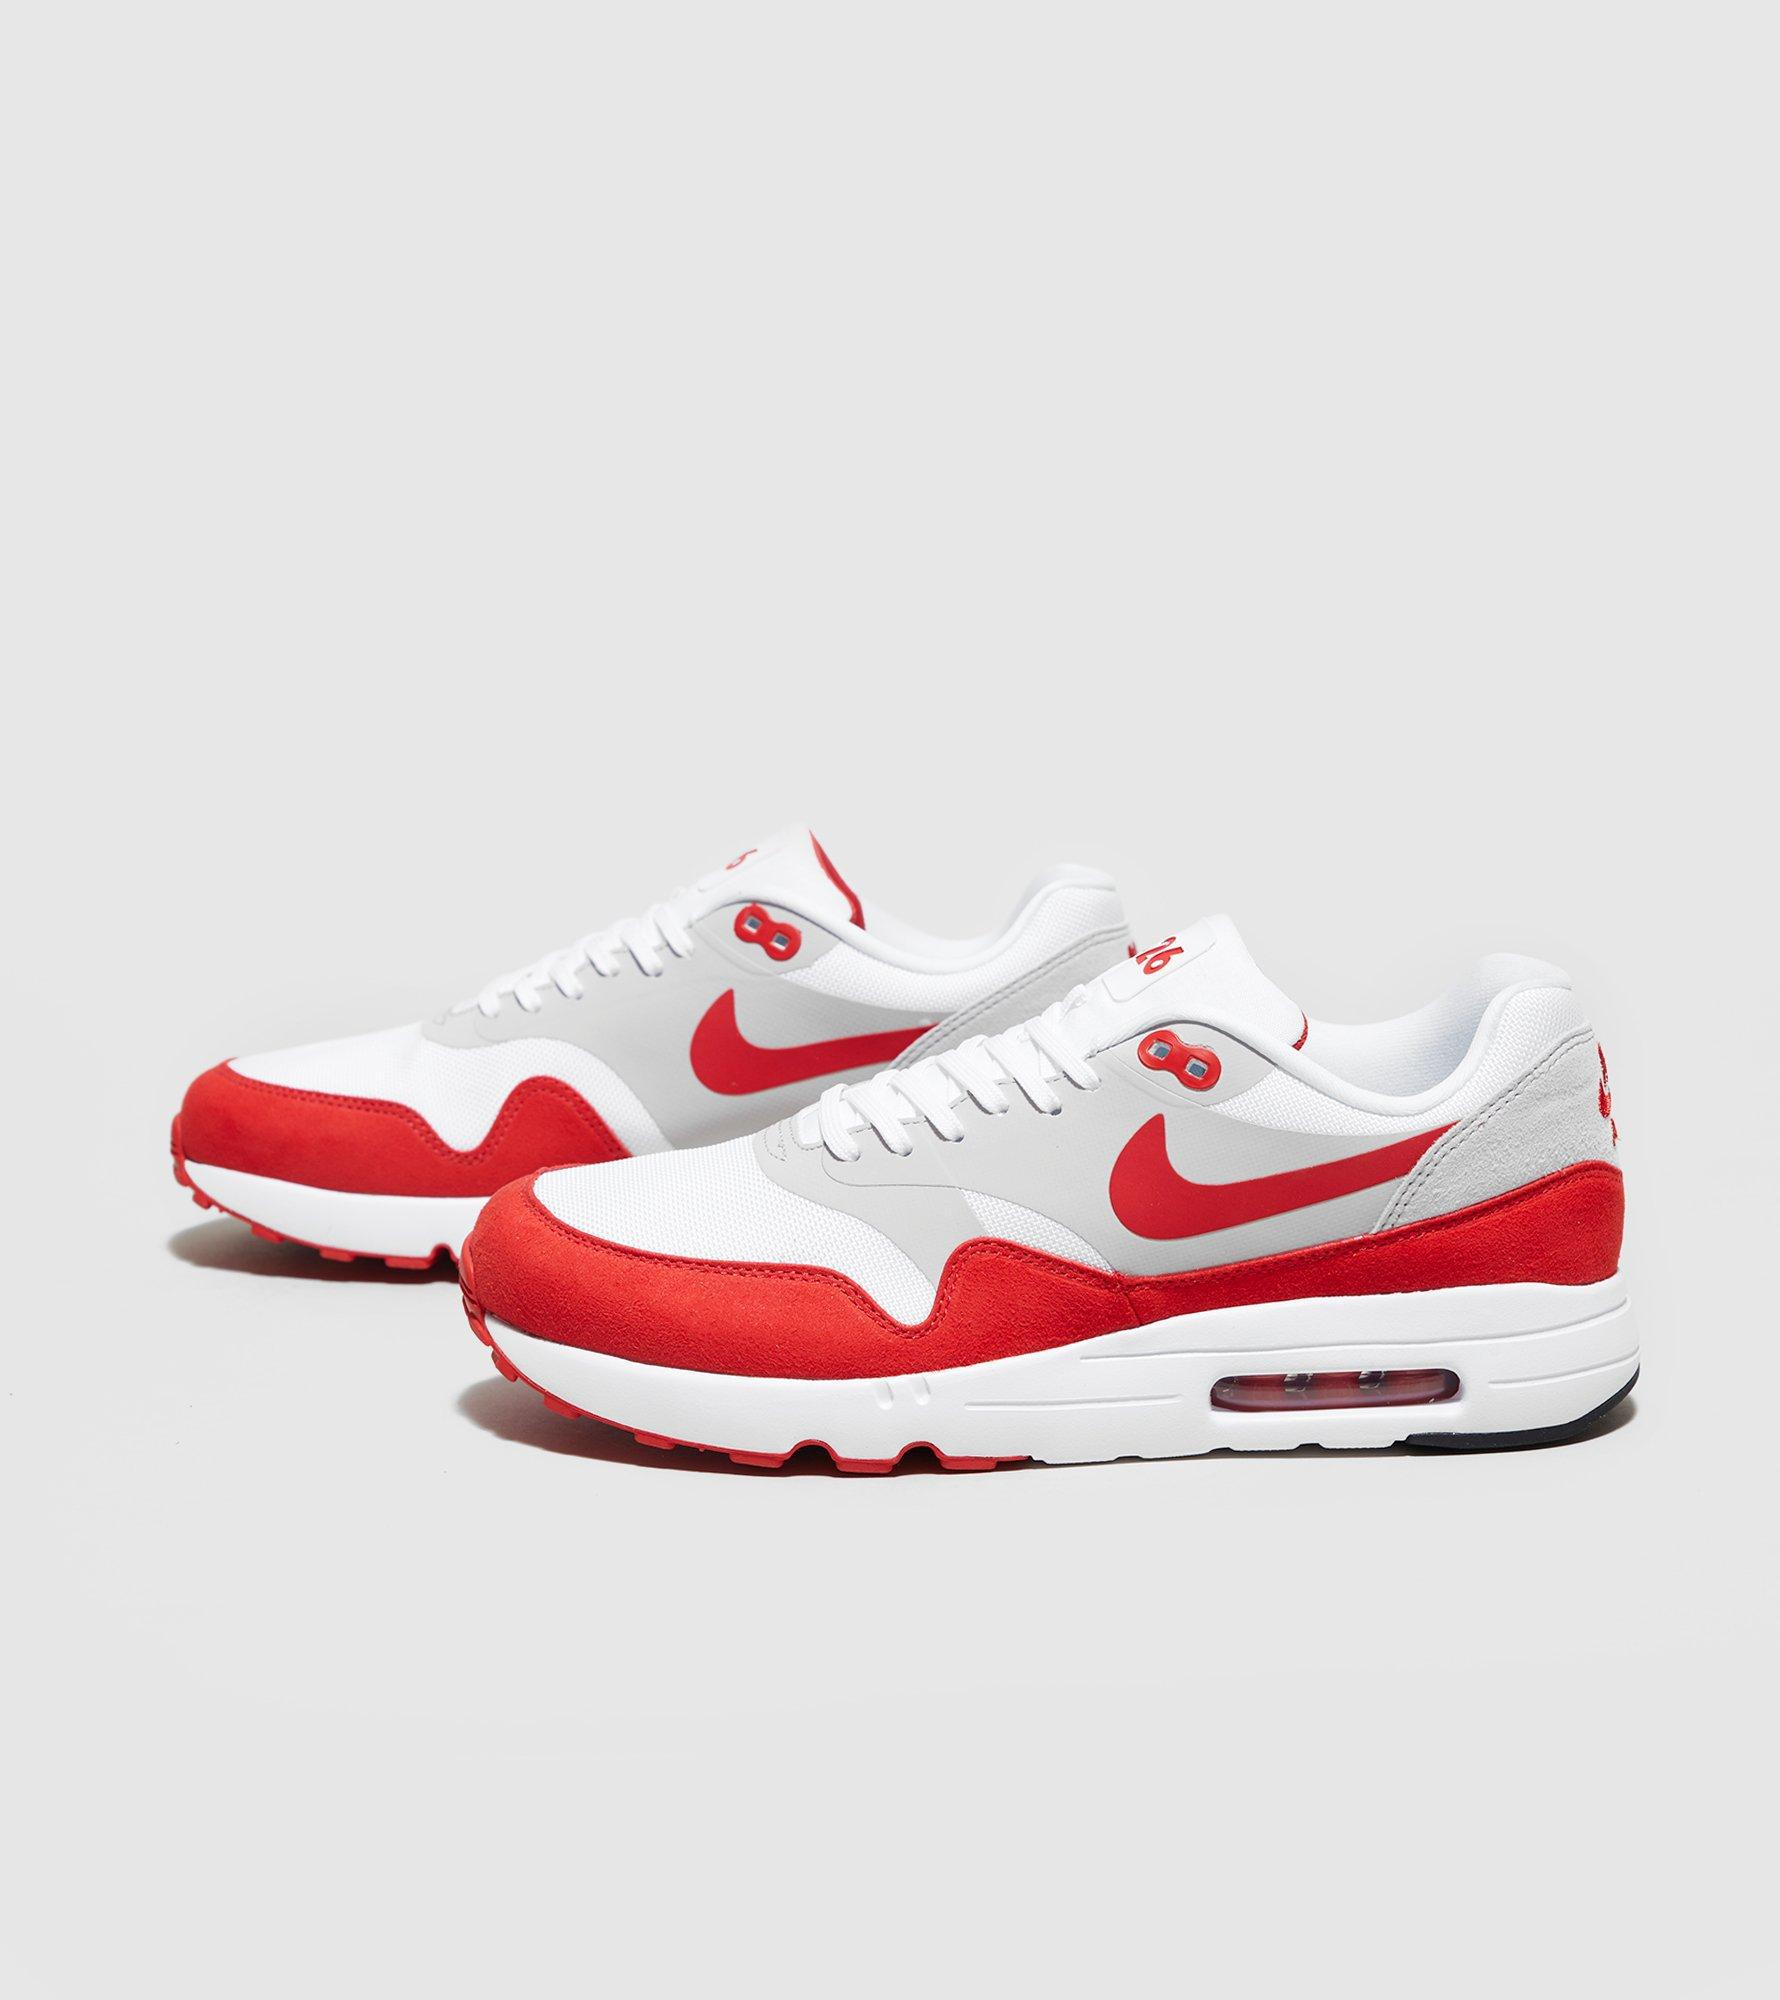 quality design 8dcf7 2a2d2 Nike Air Max 1 Ultra 2.0  anniversary  Women s in White - Lyst